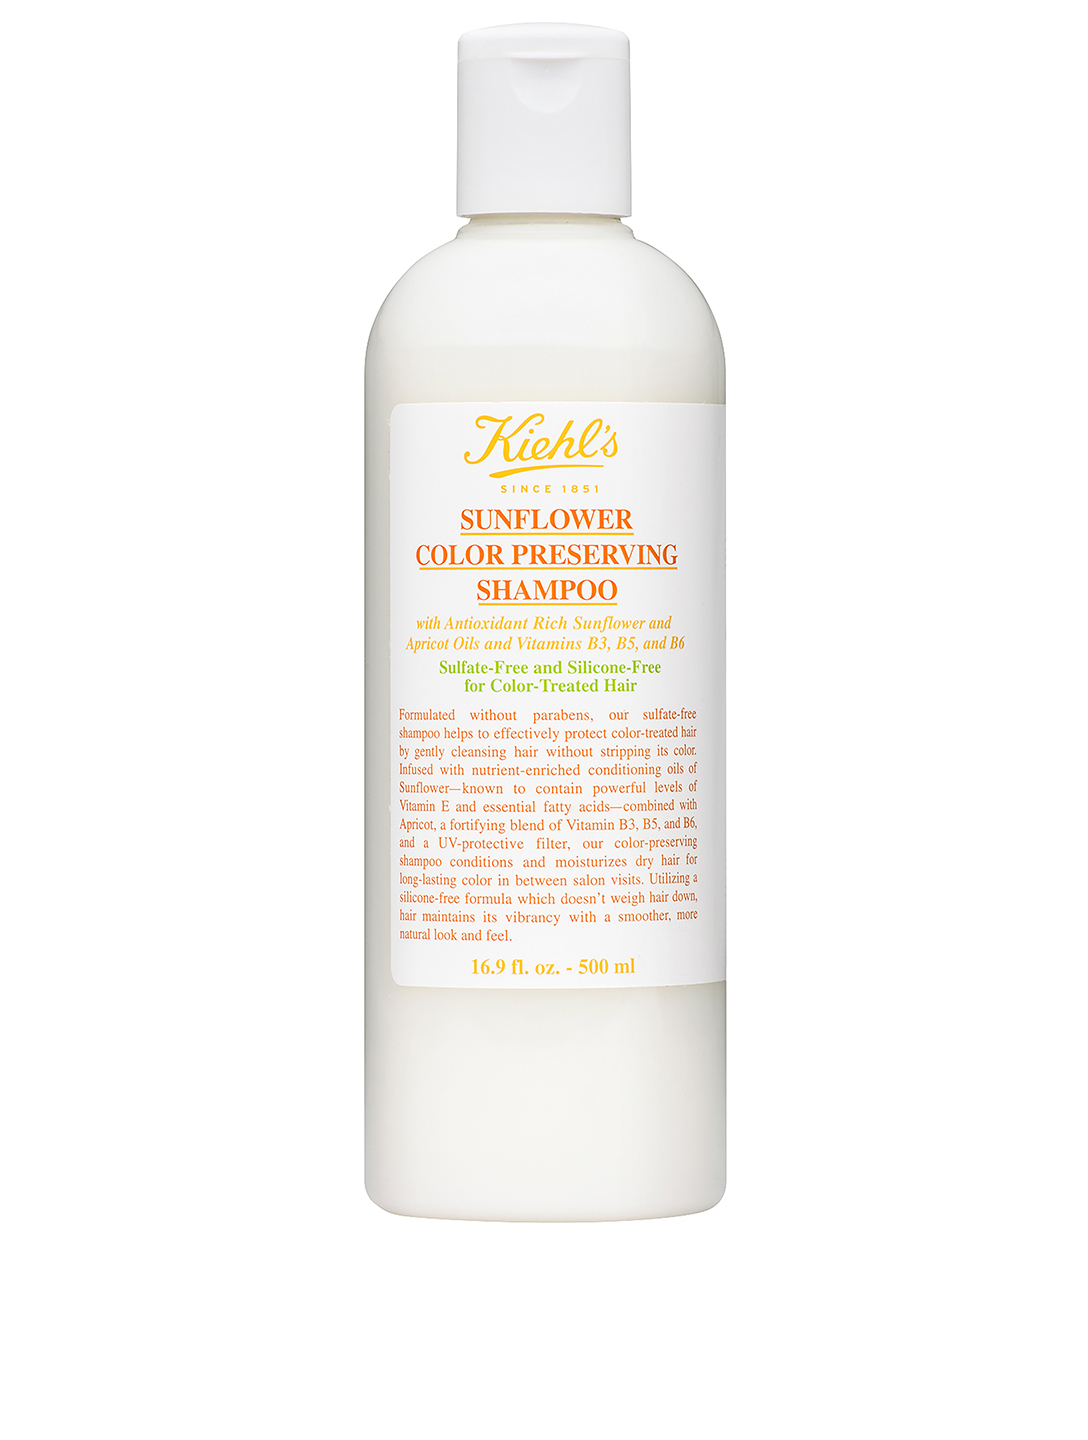 KIEHL'S Sunflower Color Preserving Shampoo Beauty